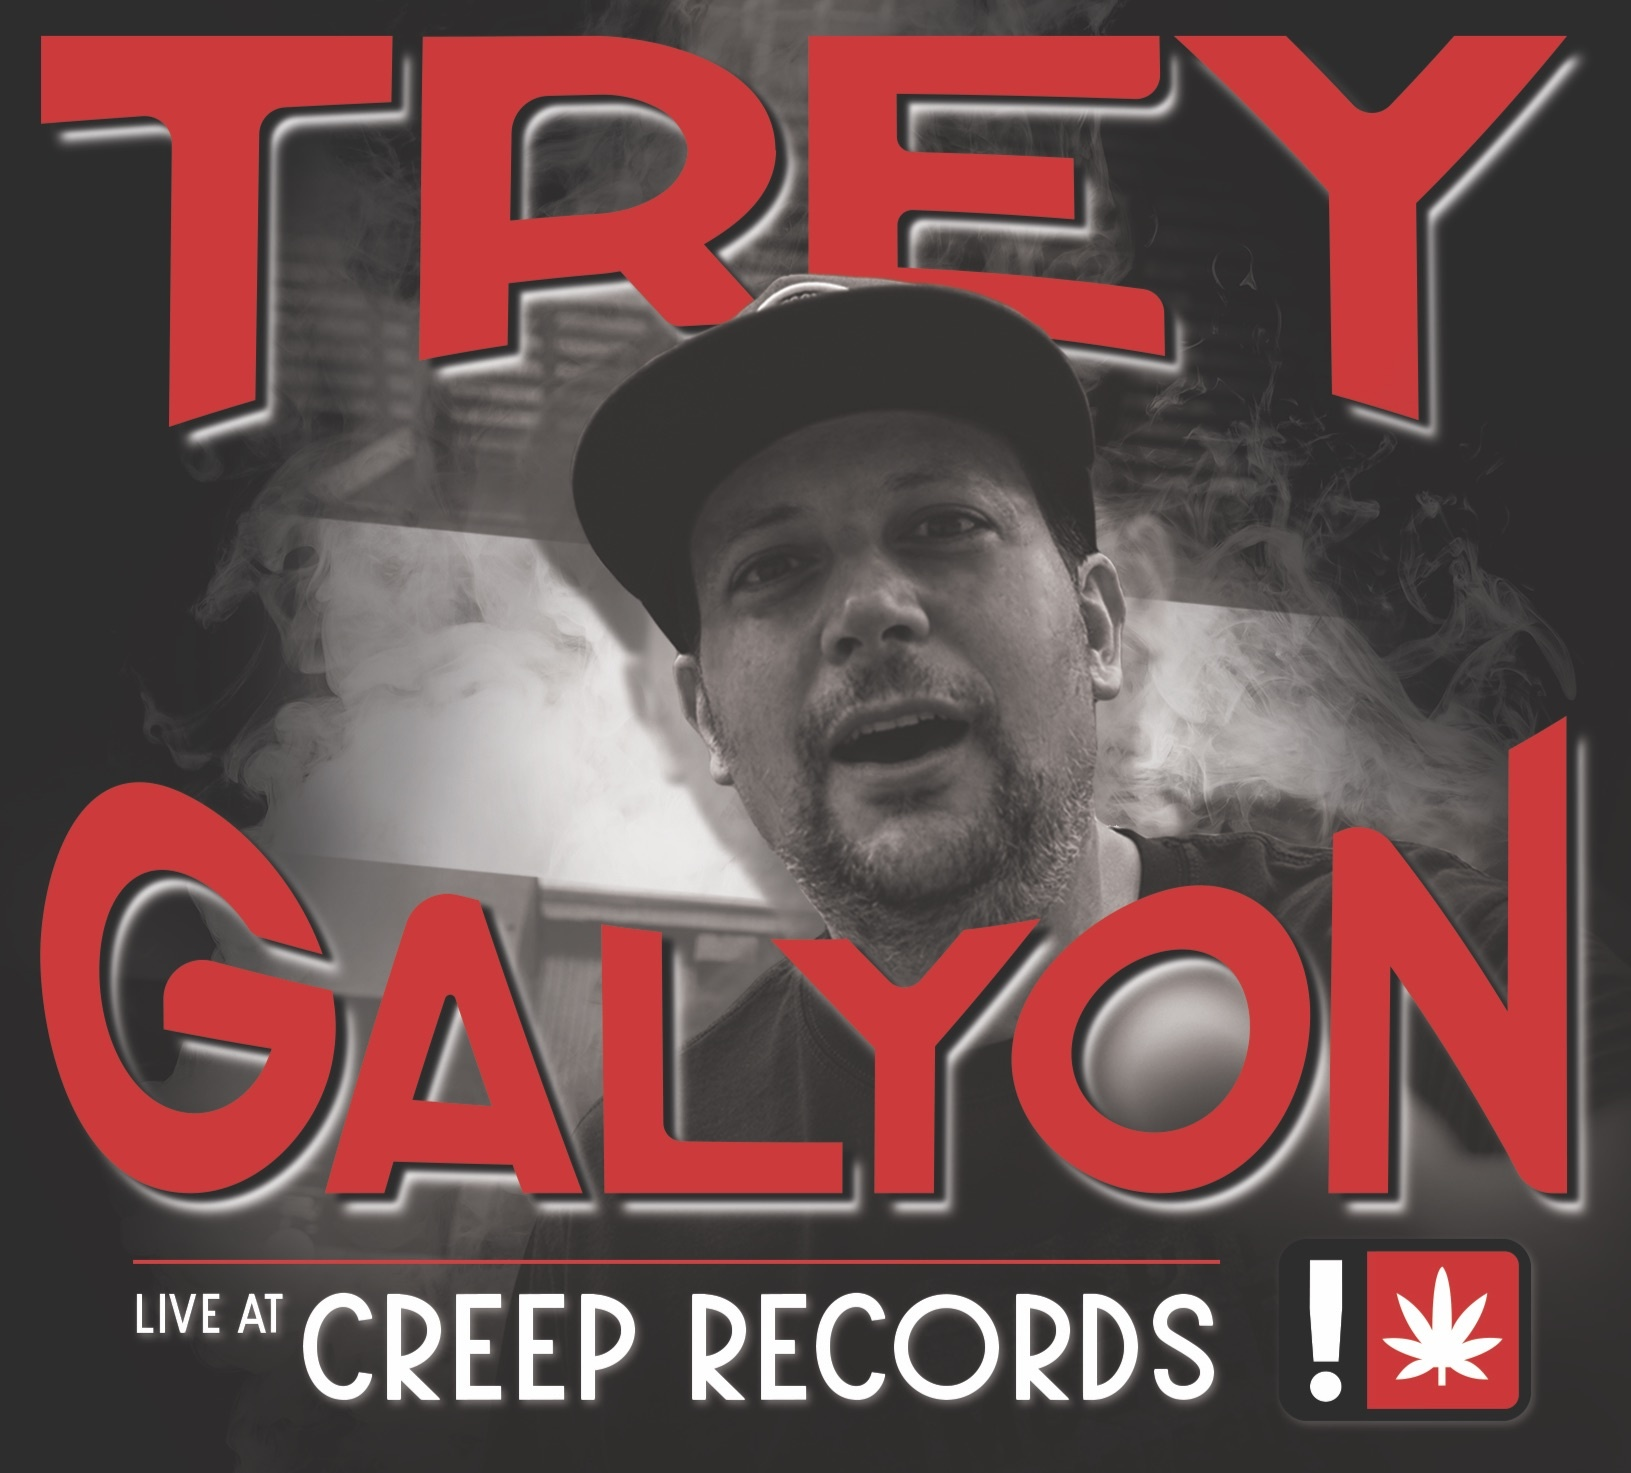 Trey Galyon Live Comedy Album